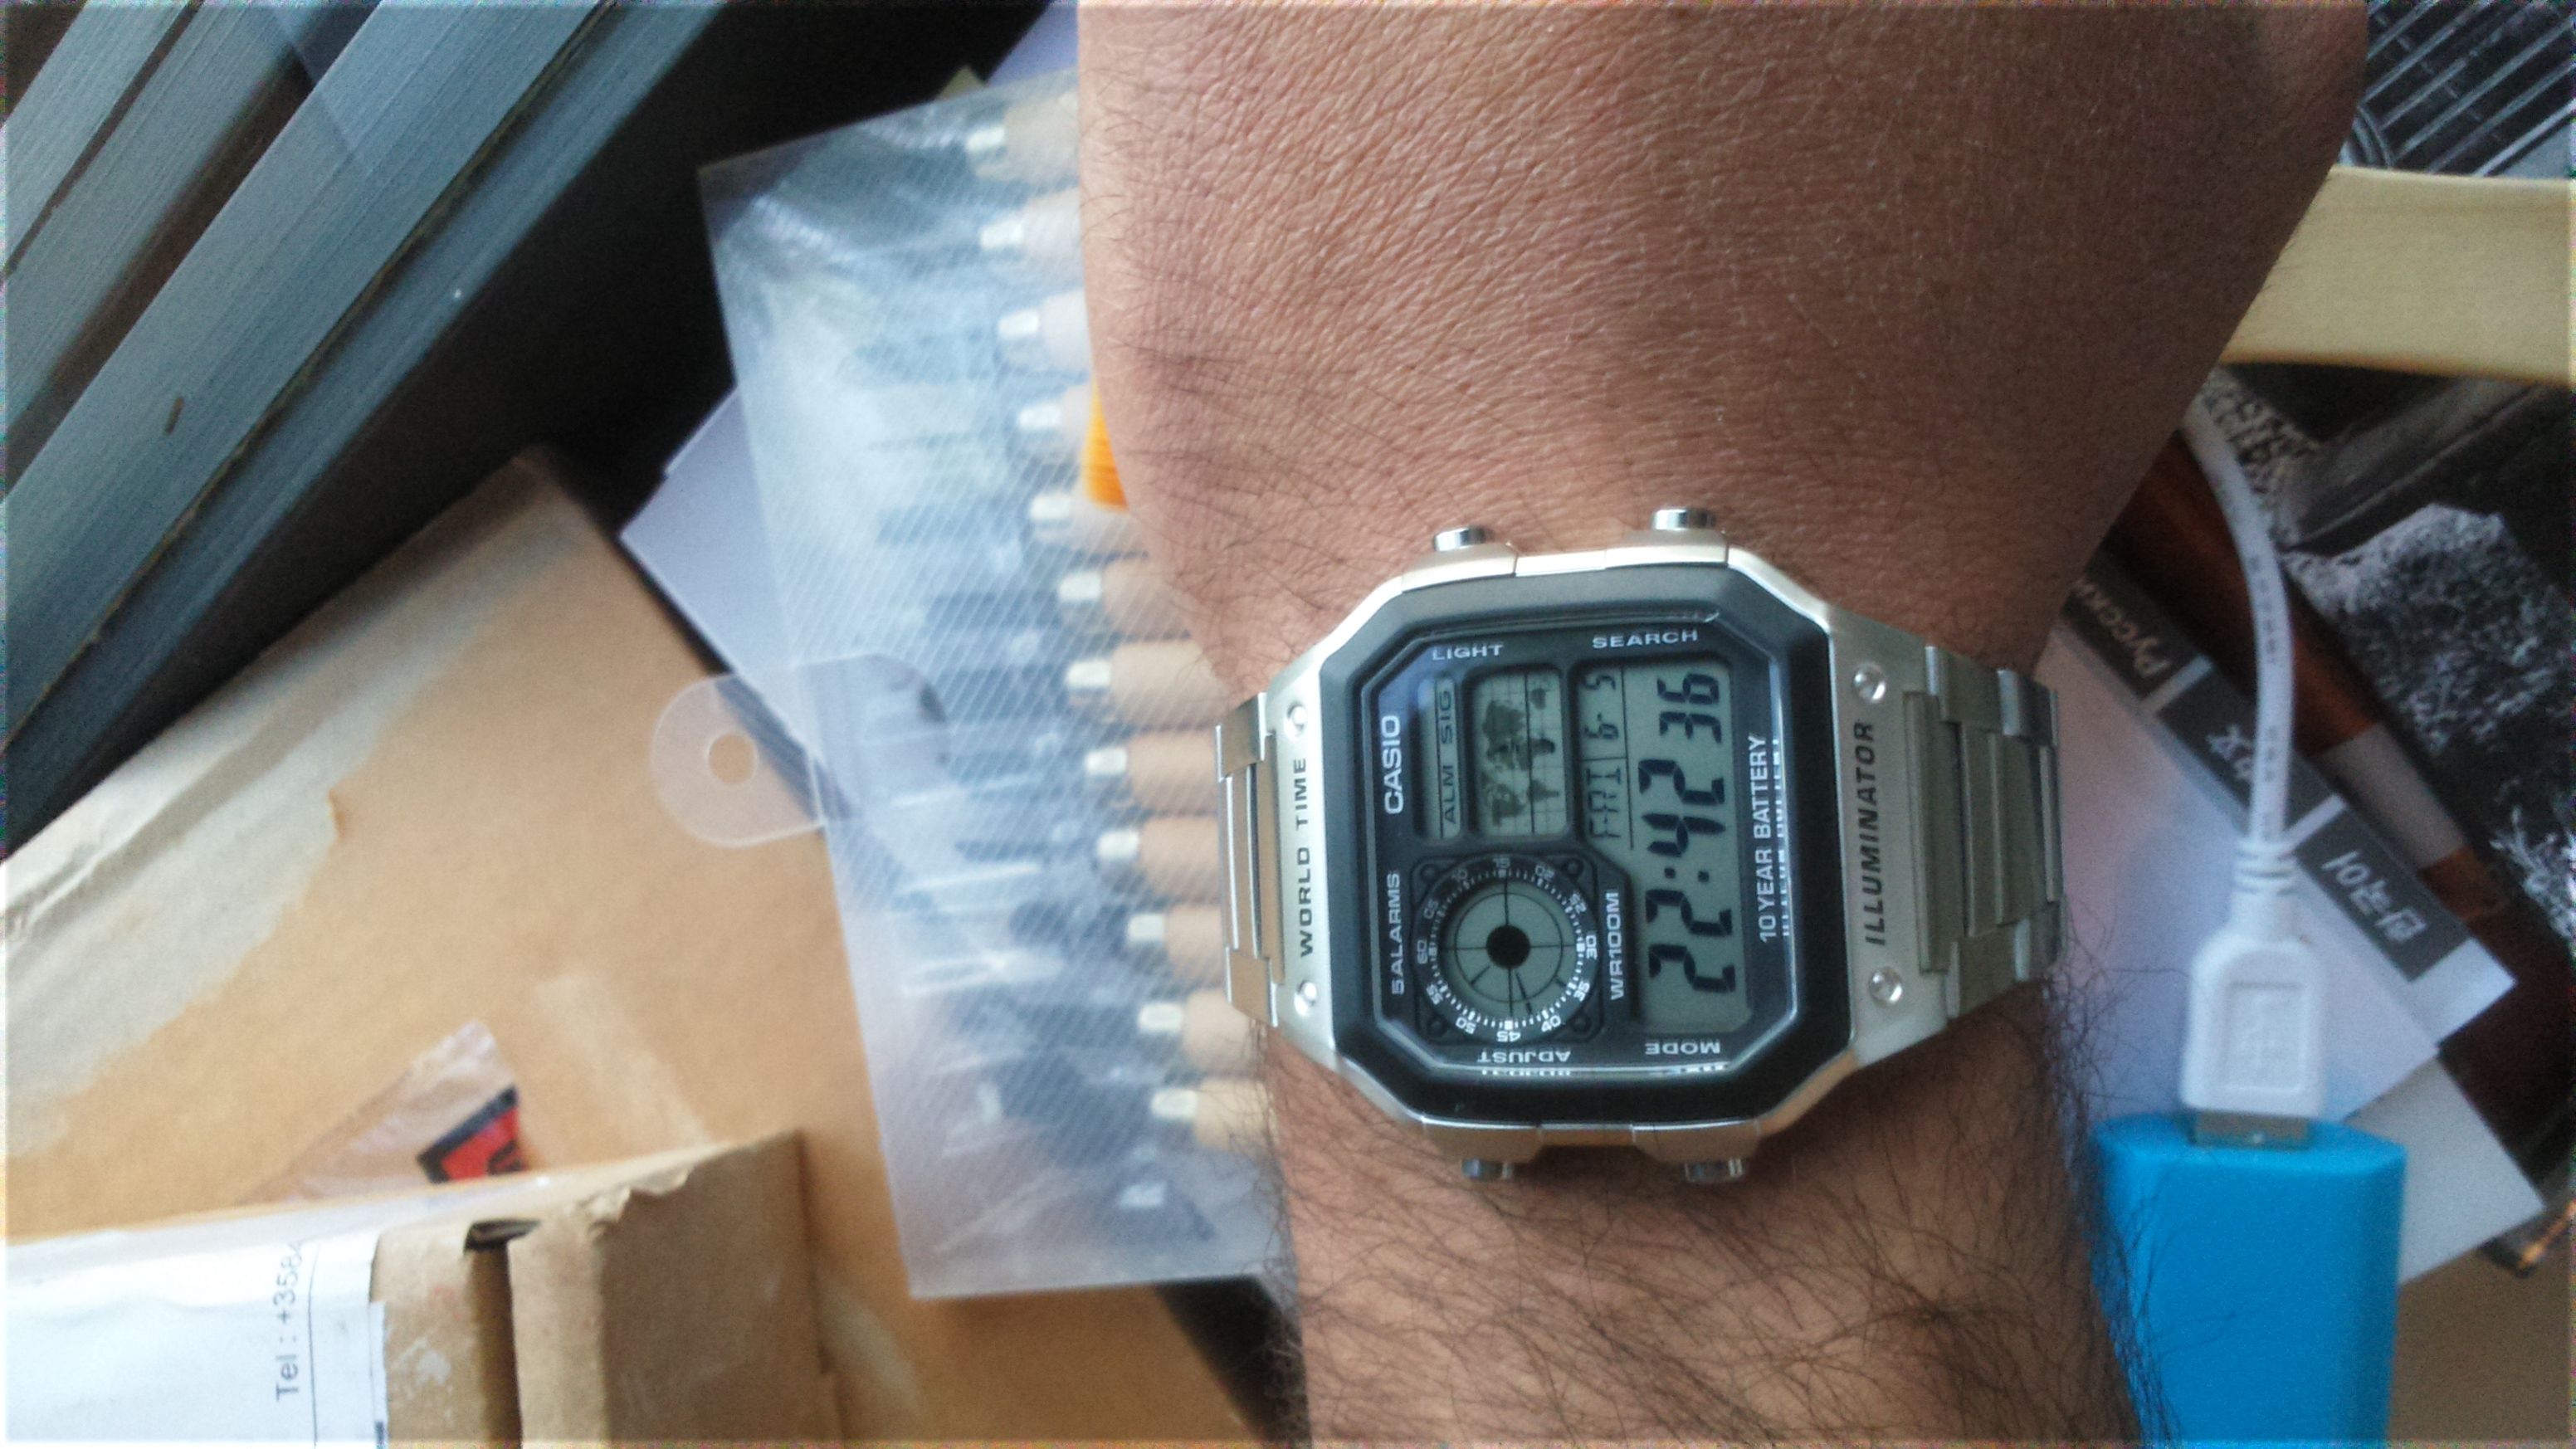 Gents Casio World Time Alarm Chronograph Watch Ae 1200whd 1avef 1000wd Original Very Nice Looking For A Reasonable Price Easy To Use Nothing Is Complicated With The Settings Even Illumination Adjustable 15 And 3